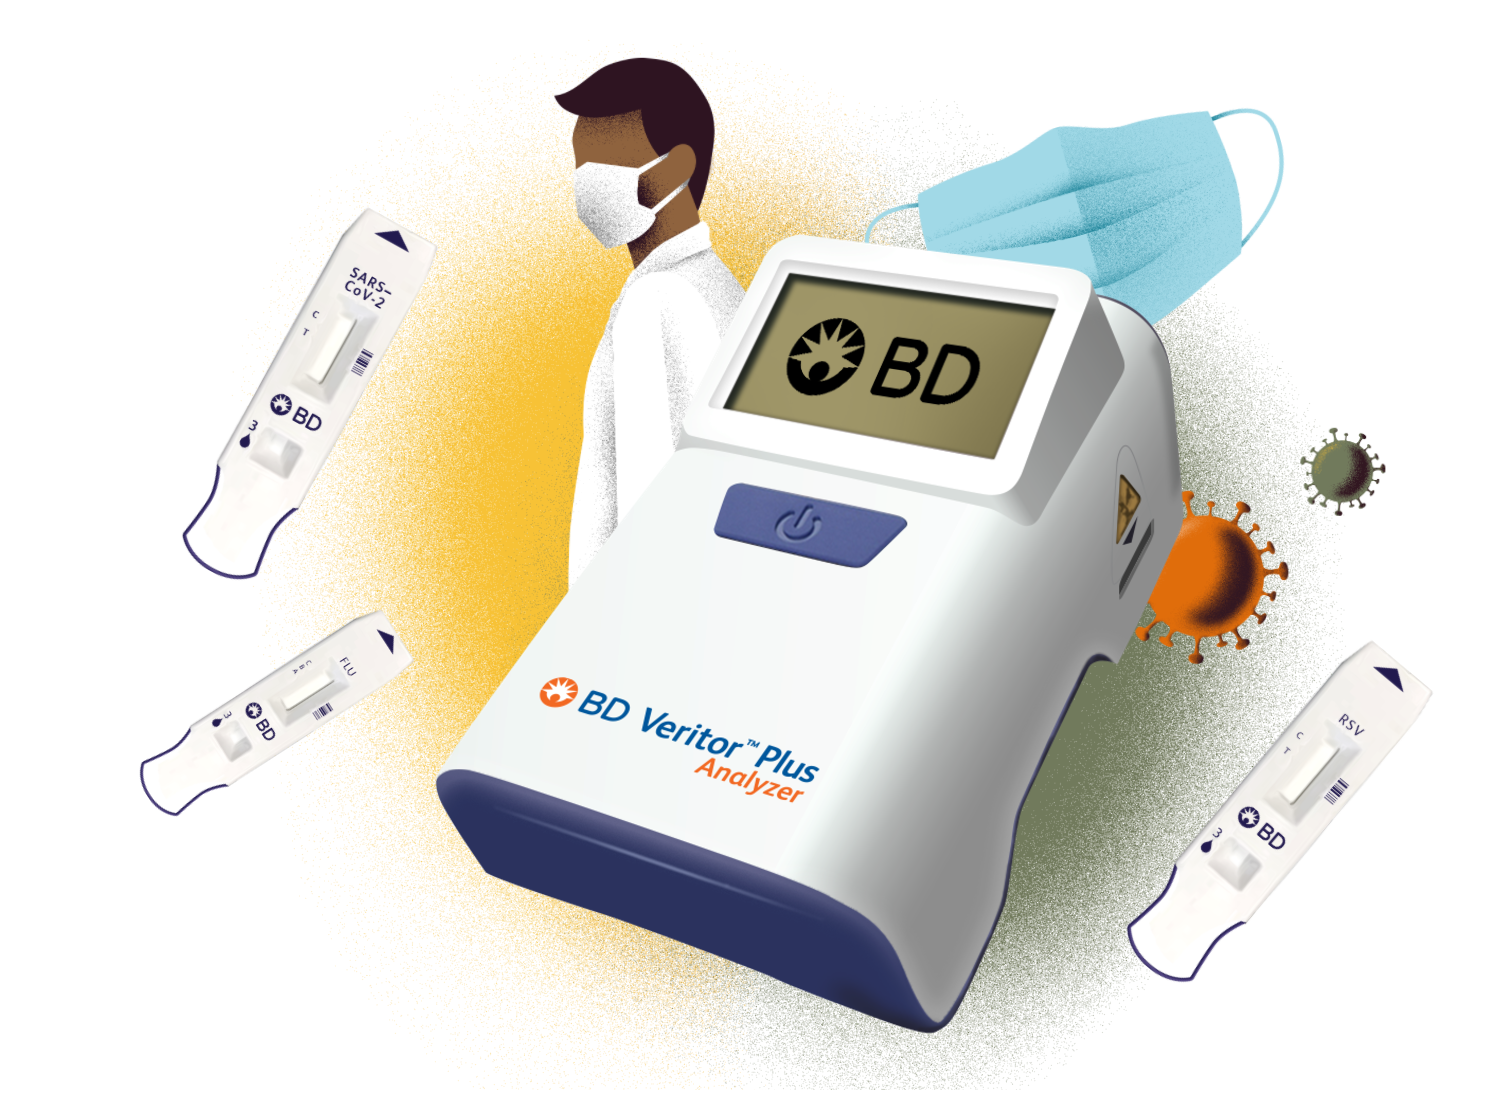 BD Veritor Plus, Medical Professional, Face Mask and virus illustration